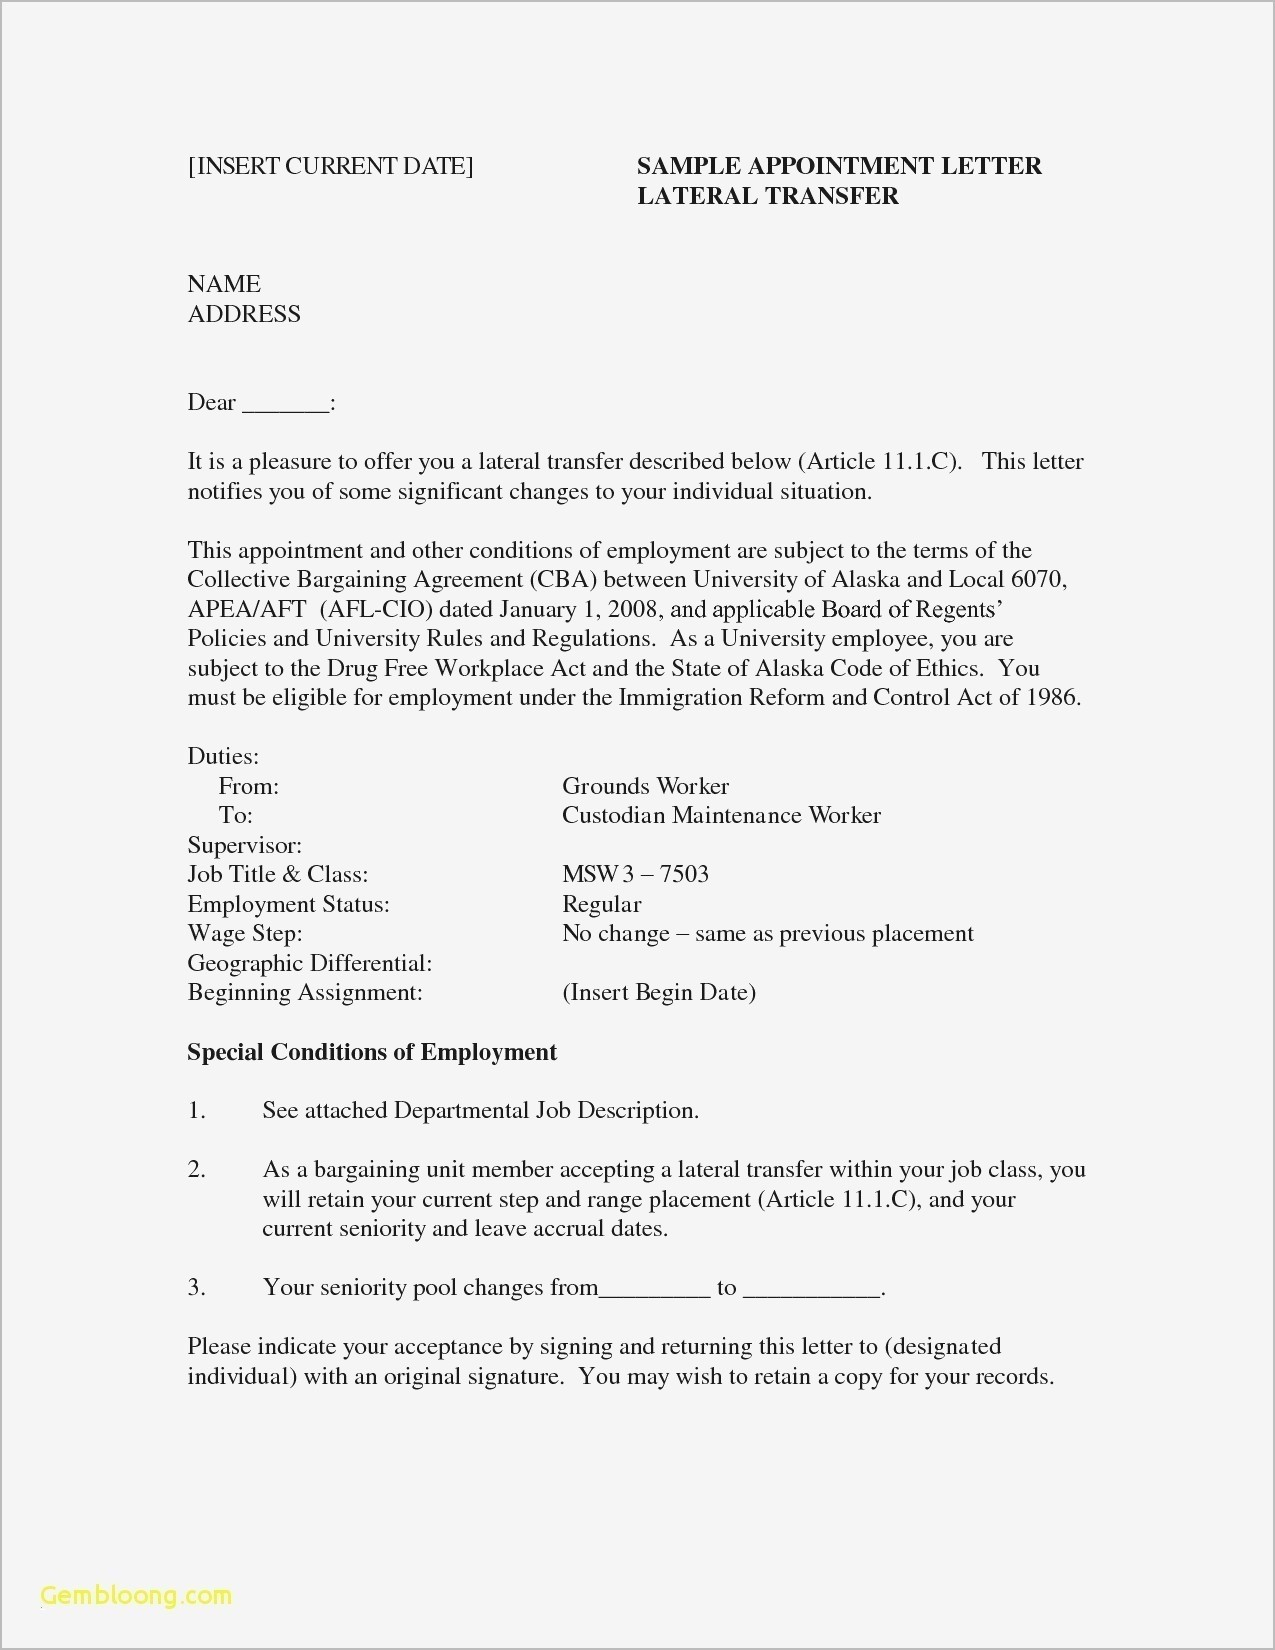 Musical theater Resume Template - Music Resume Template Unique Template for Resume Best College Resume